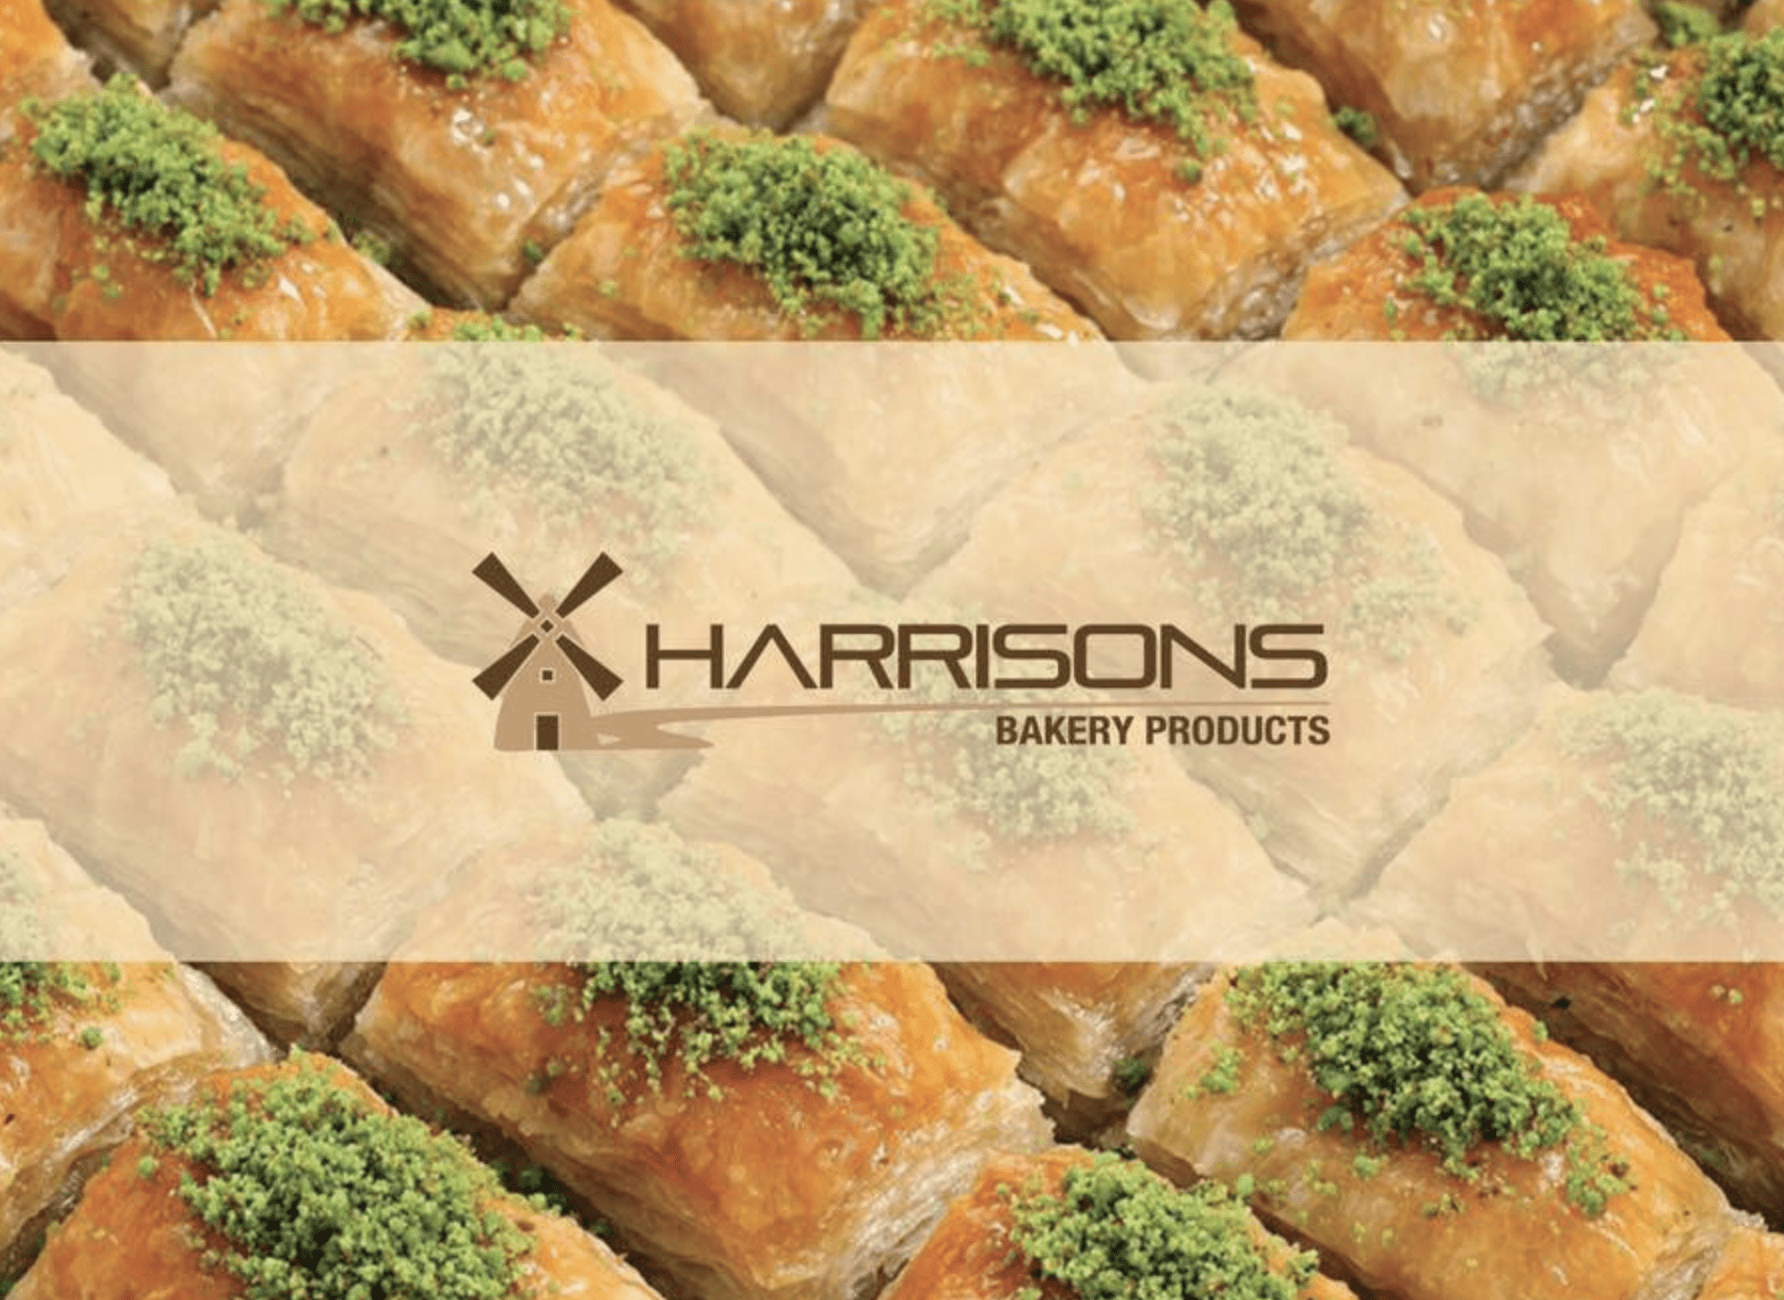 Harrisons Bakery